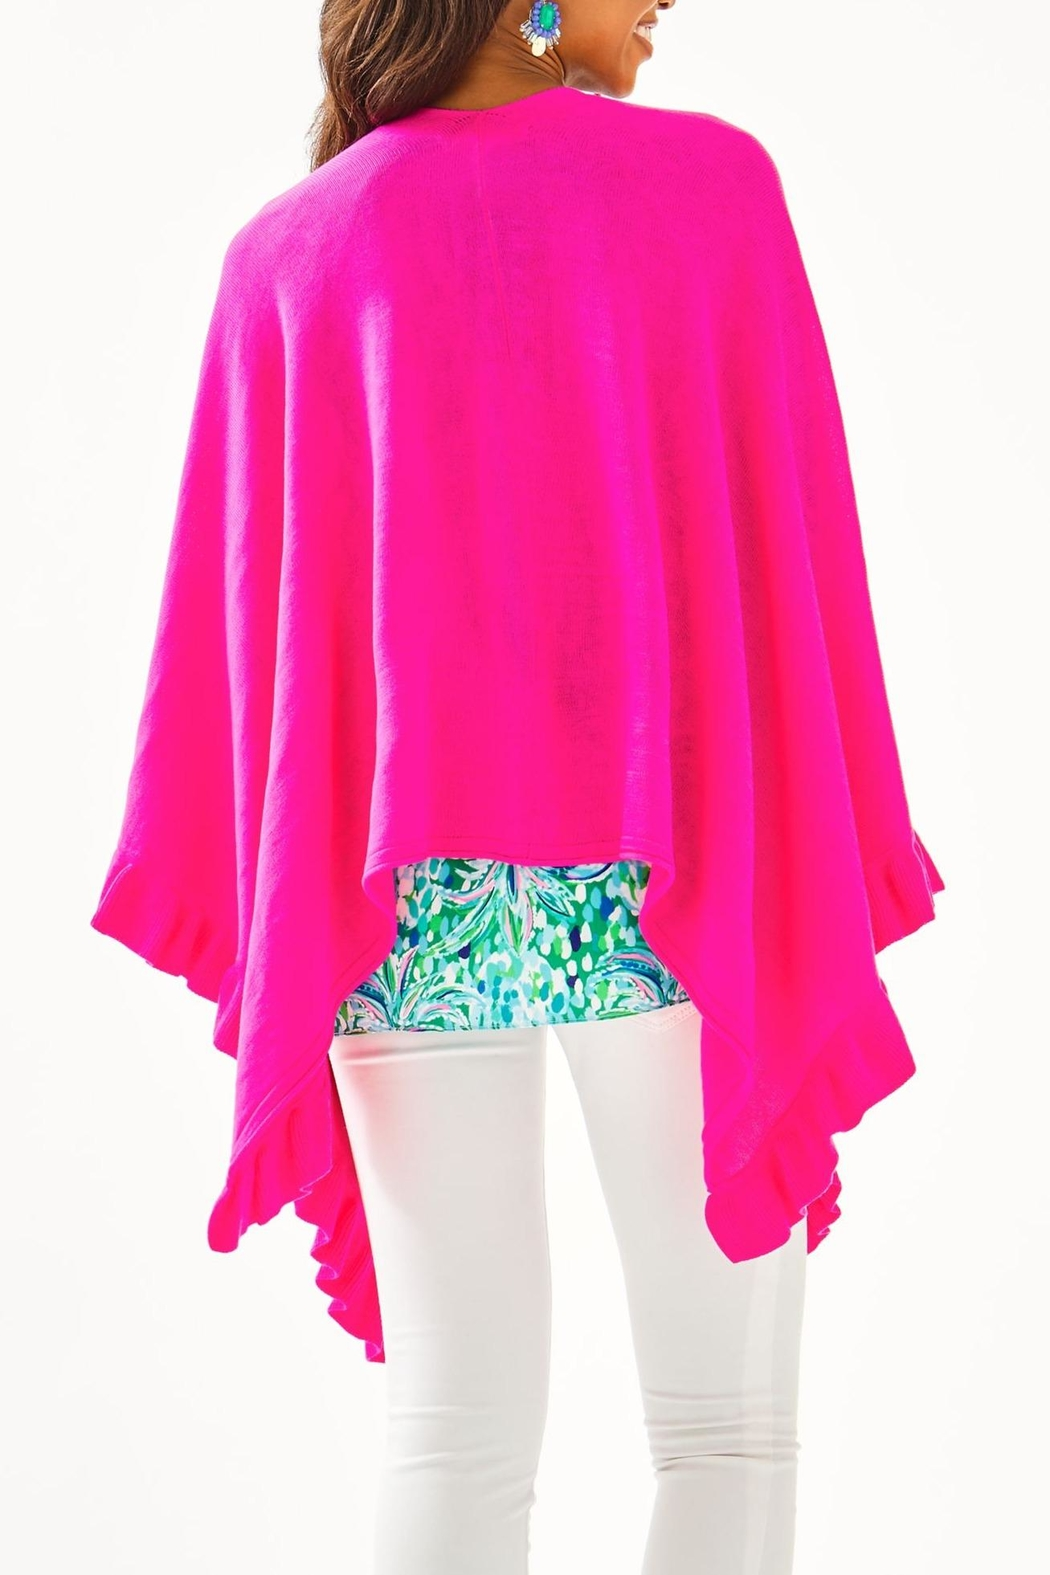 Lilly Pulitzer Rosaria Ruffle-Sweater Wrap - Front Full Image